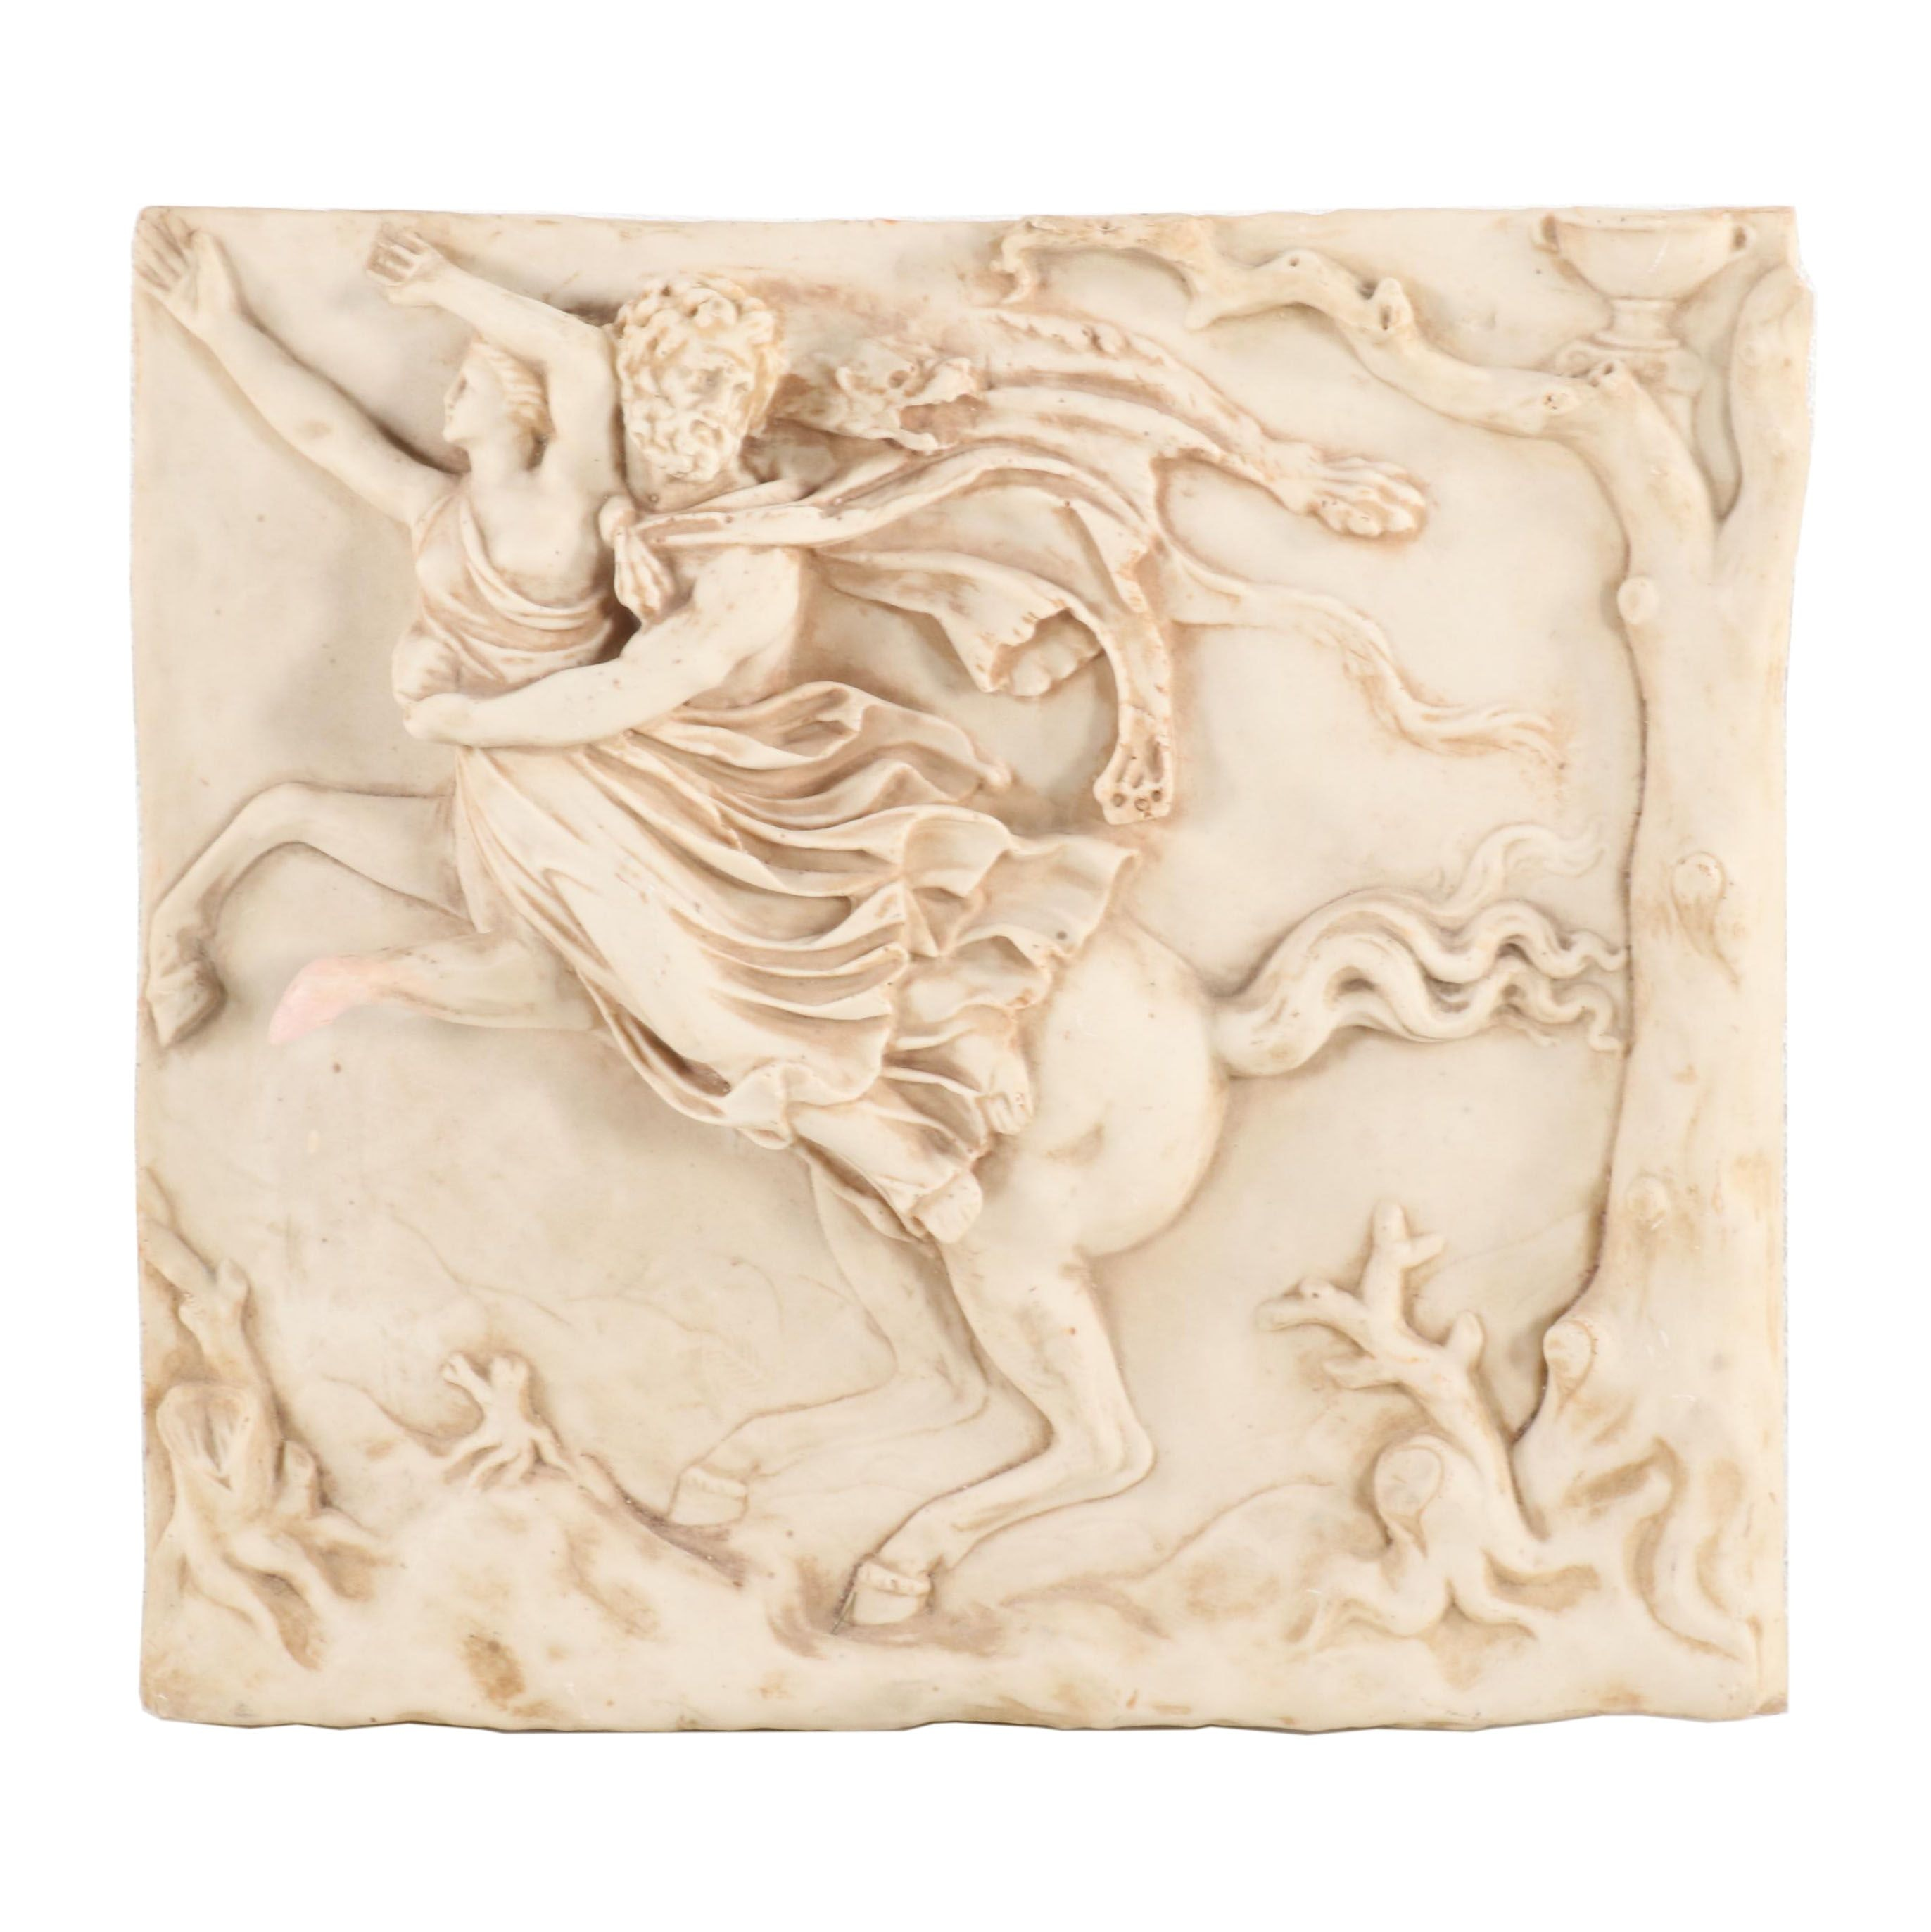 Hellenistic Style Composite Bas Relief of a Centaur Capturing a Woman